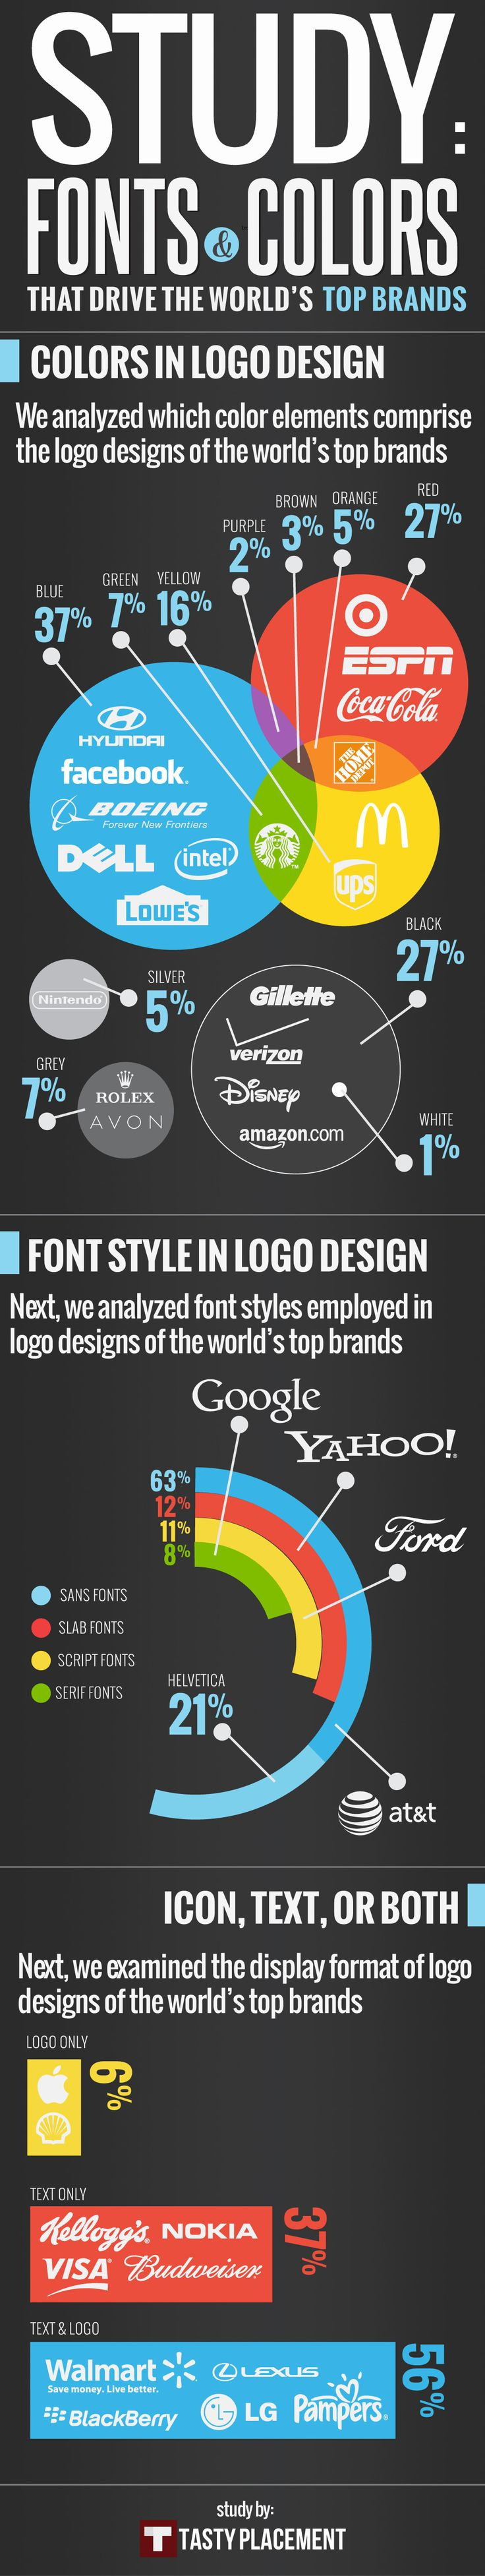 A Study in Blue  Infographic of the fonts & colors that drive the World's top brands. DesignTAXI.com